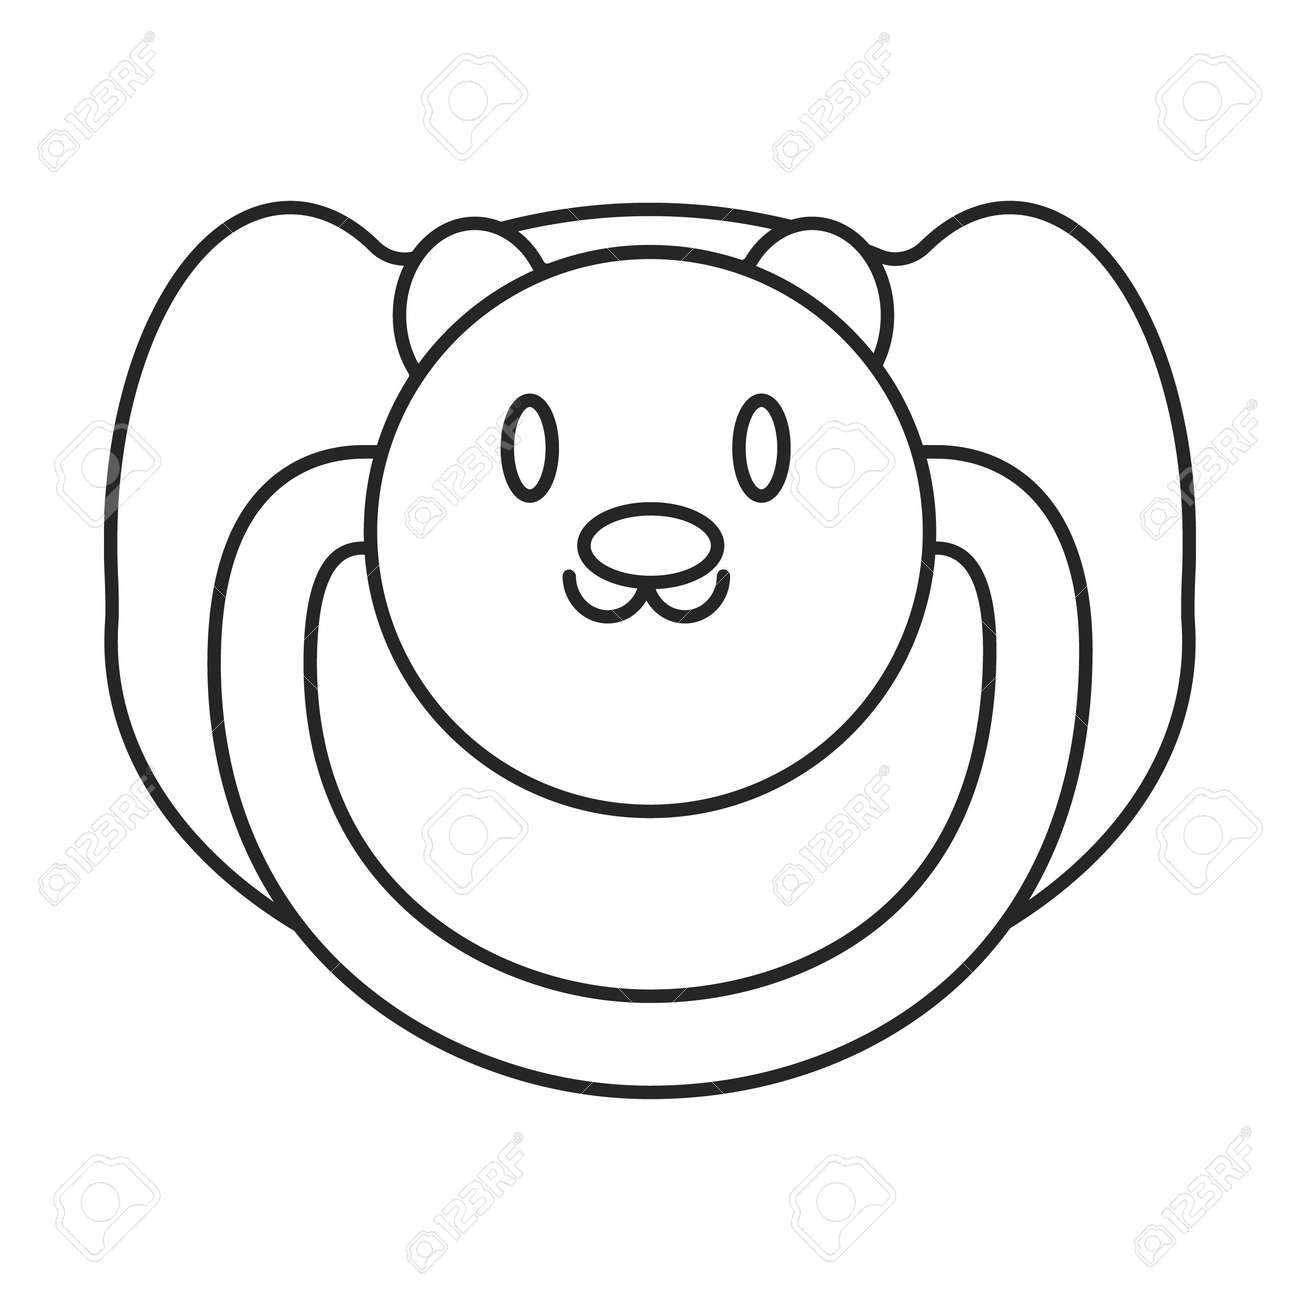 Dummy pacifier vector outline icon. Vector illustration baby on white background. Isolated outline illustration icon of baby dummy pacifier. - 168840965